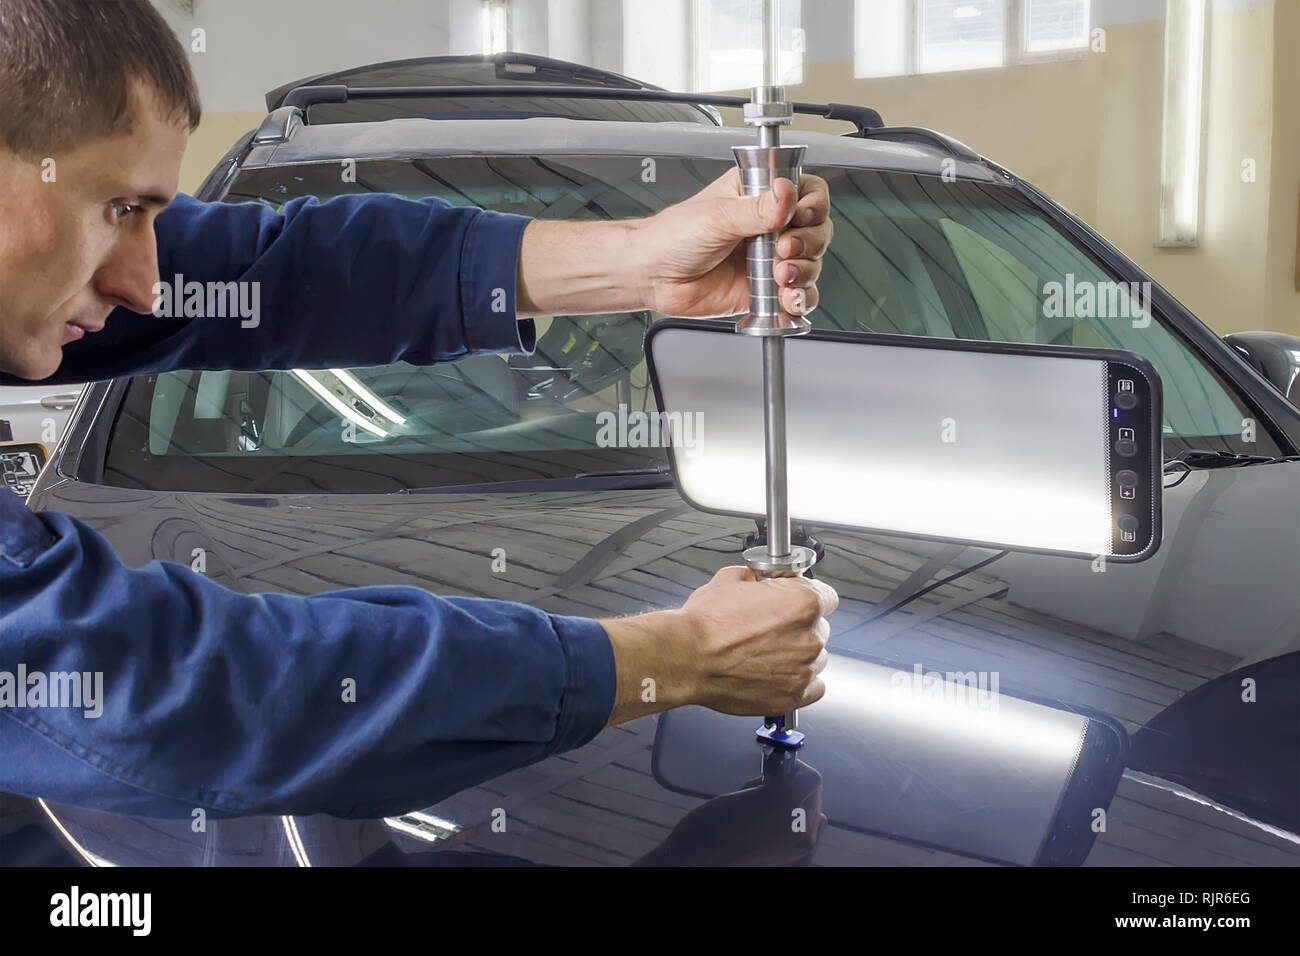 Professional mechanic removes dents on the car body Stock Photo